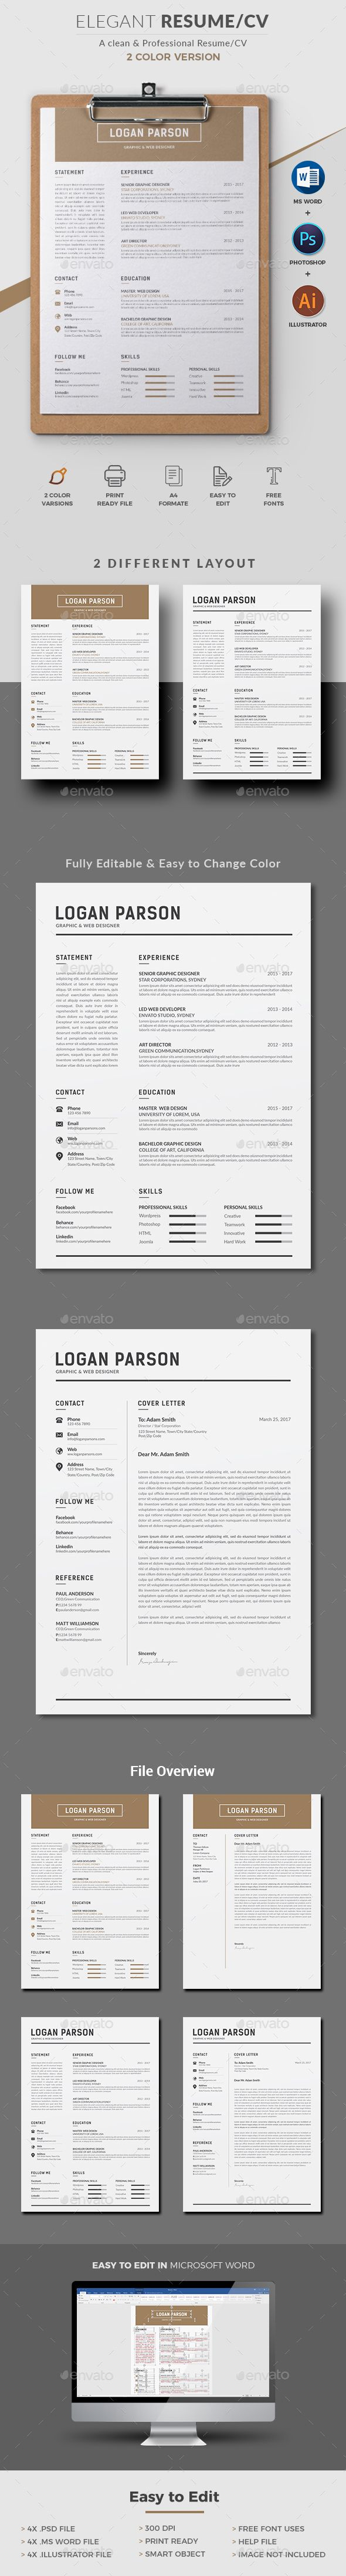 Functional Resume Template Microsoft%0A Resume